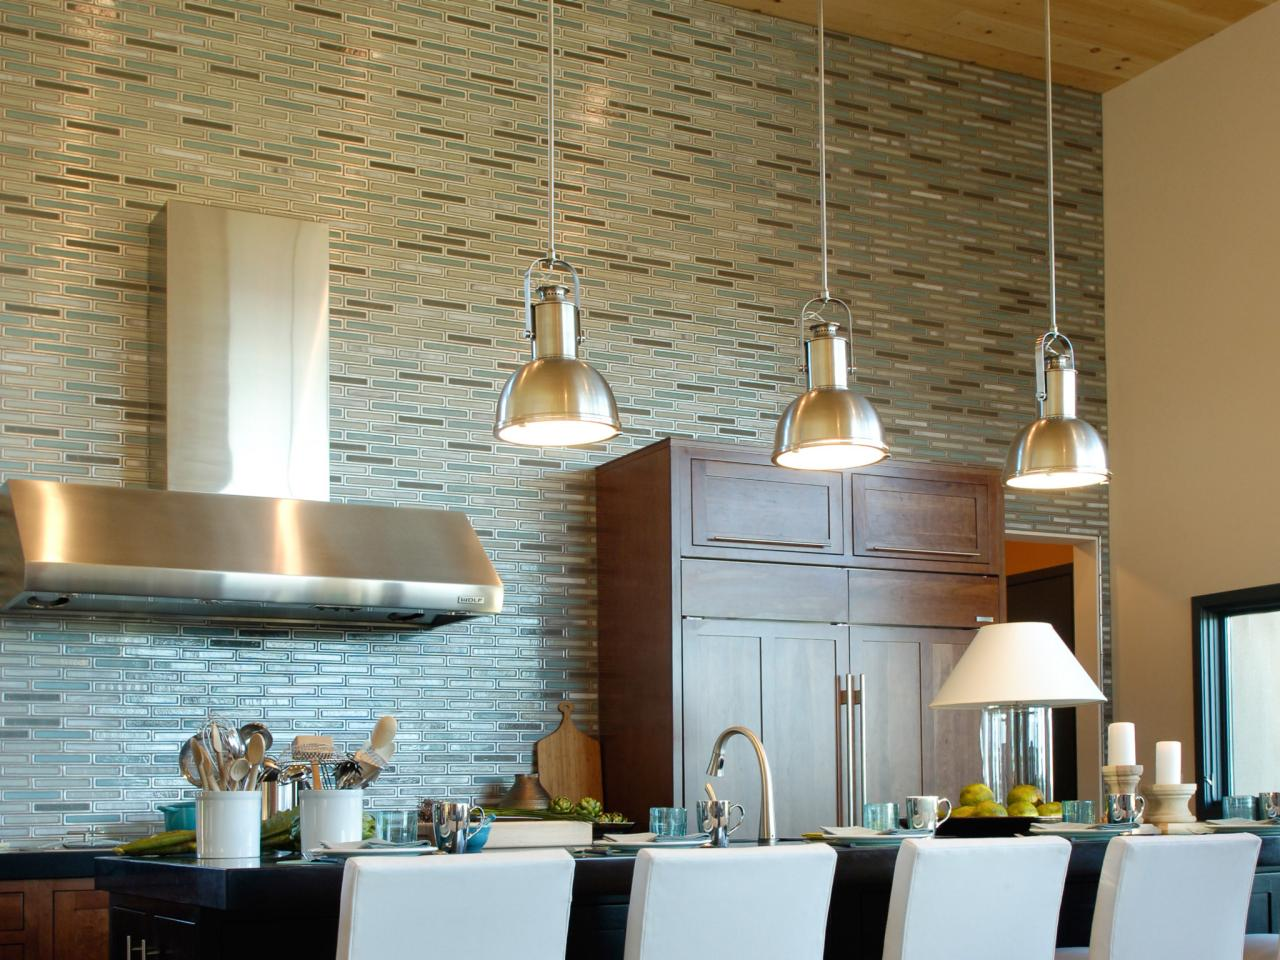 Backsplash Tile Ideas Collection kitchen-backsplash-tile-ideas_4x3